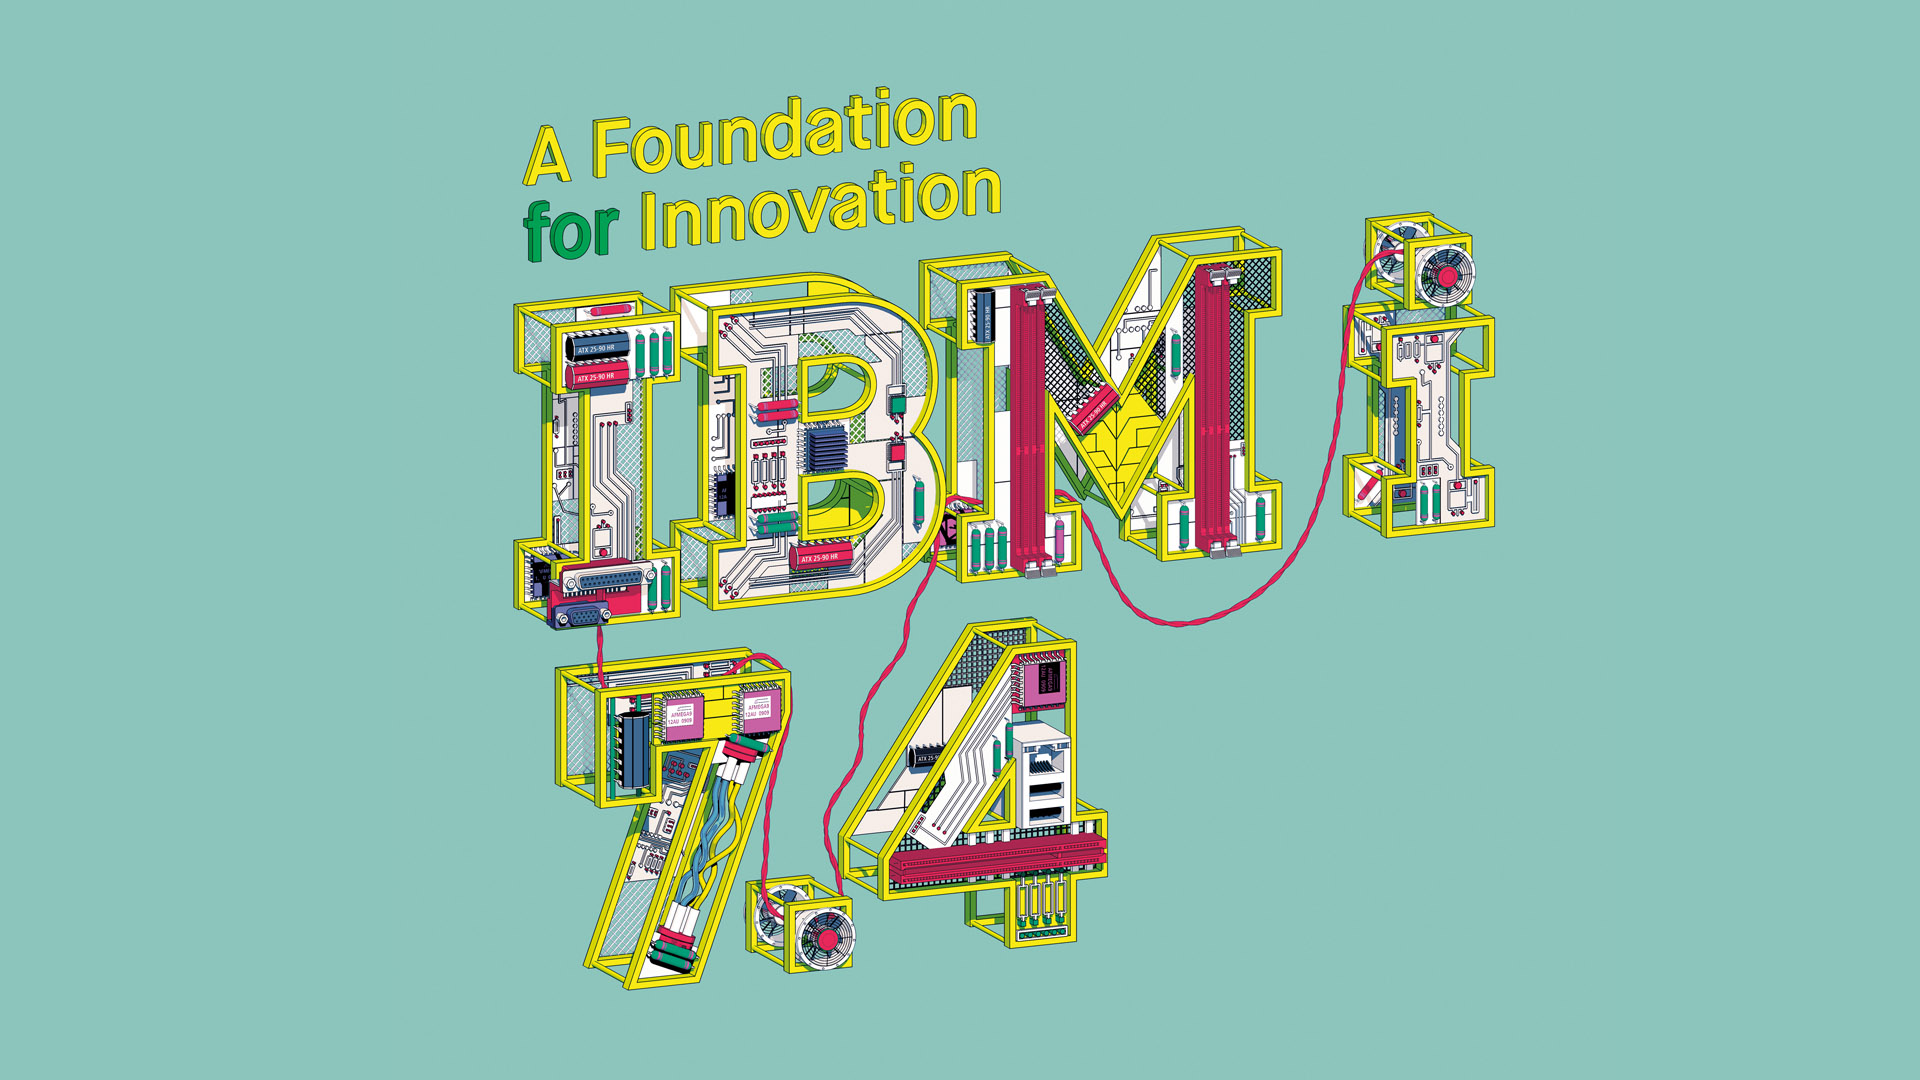 """A foundation for Innovation IBM i 7.4"" against a teal background."